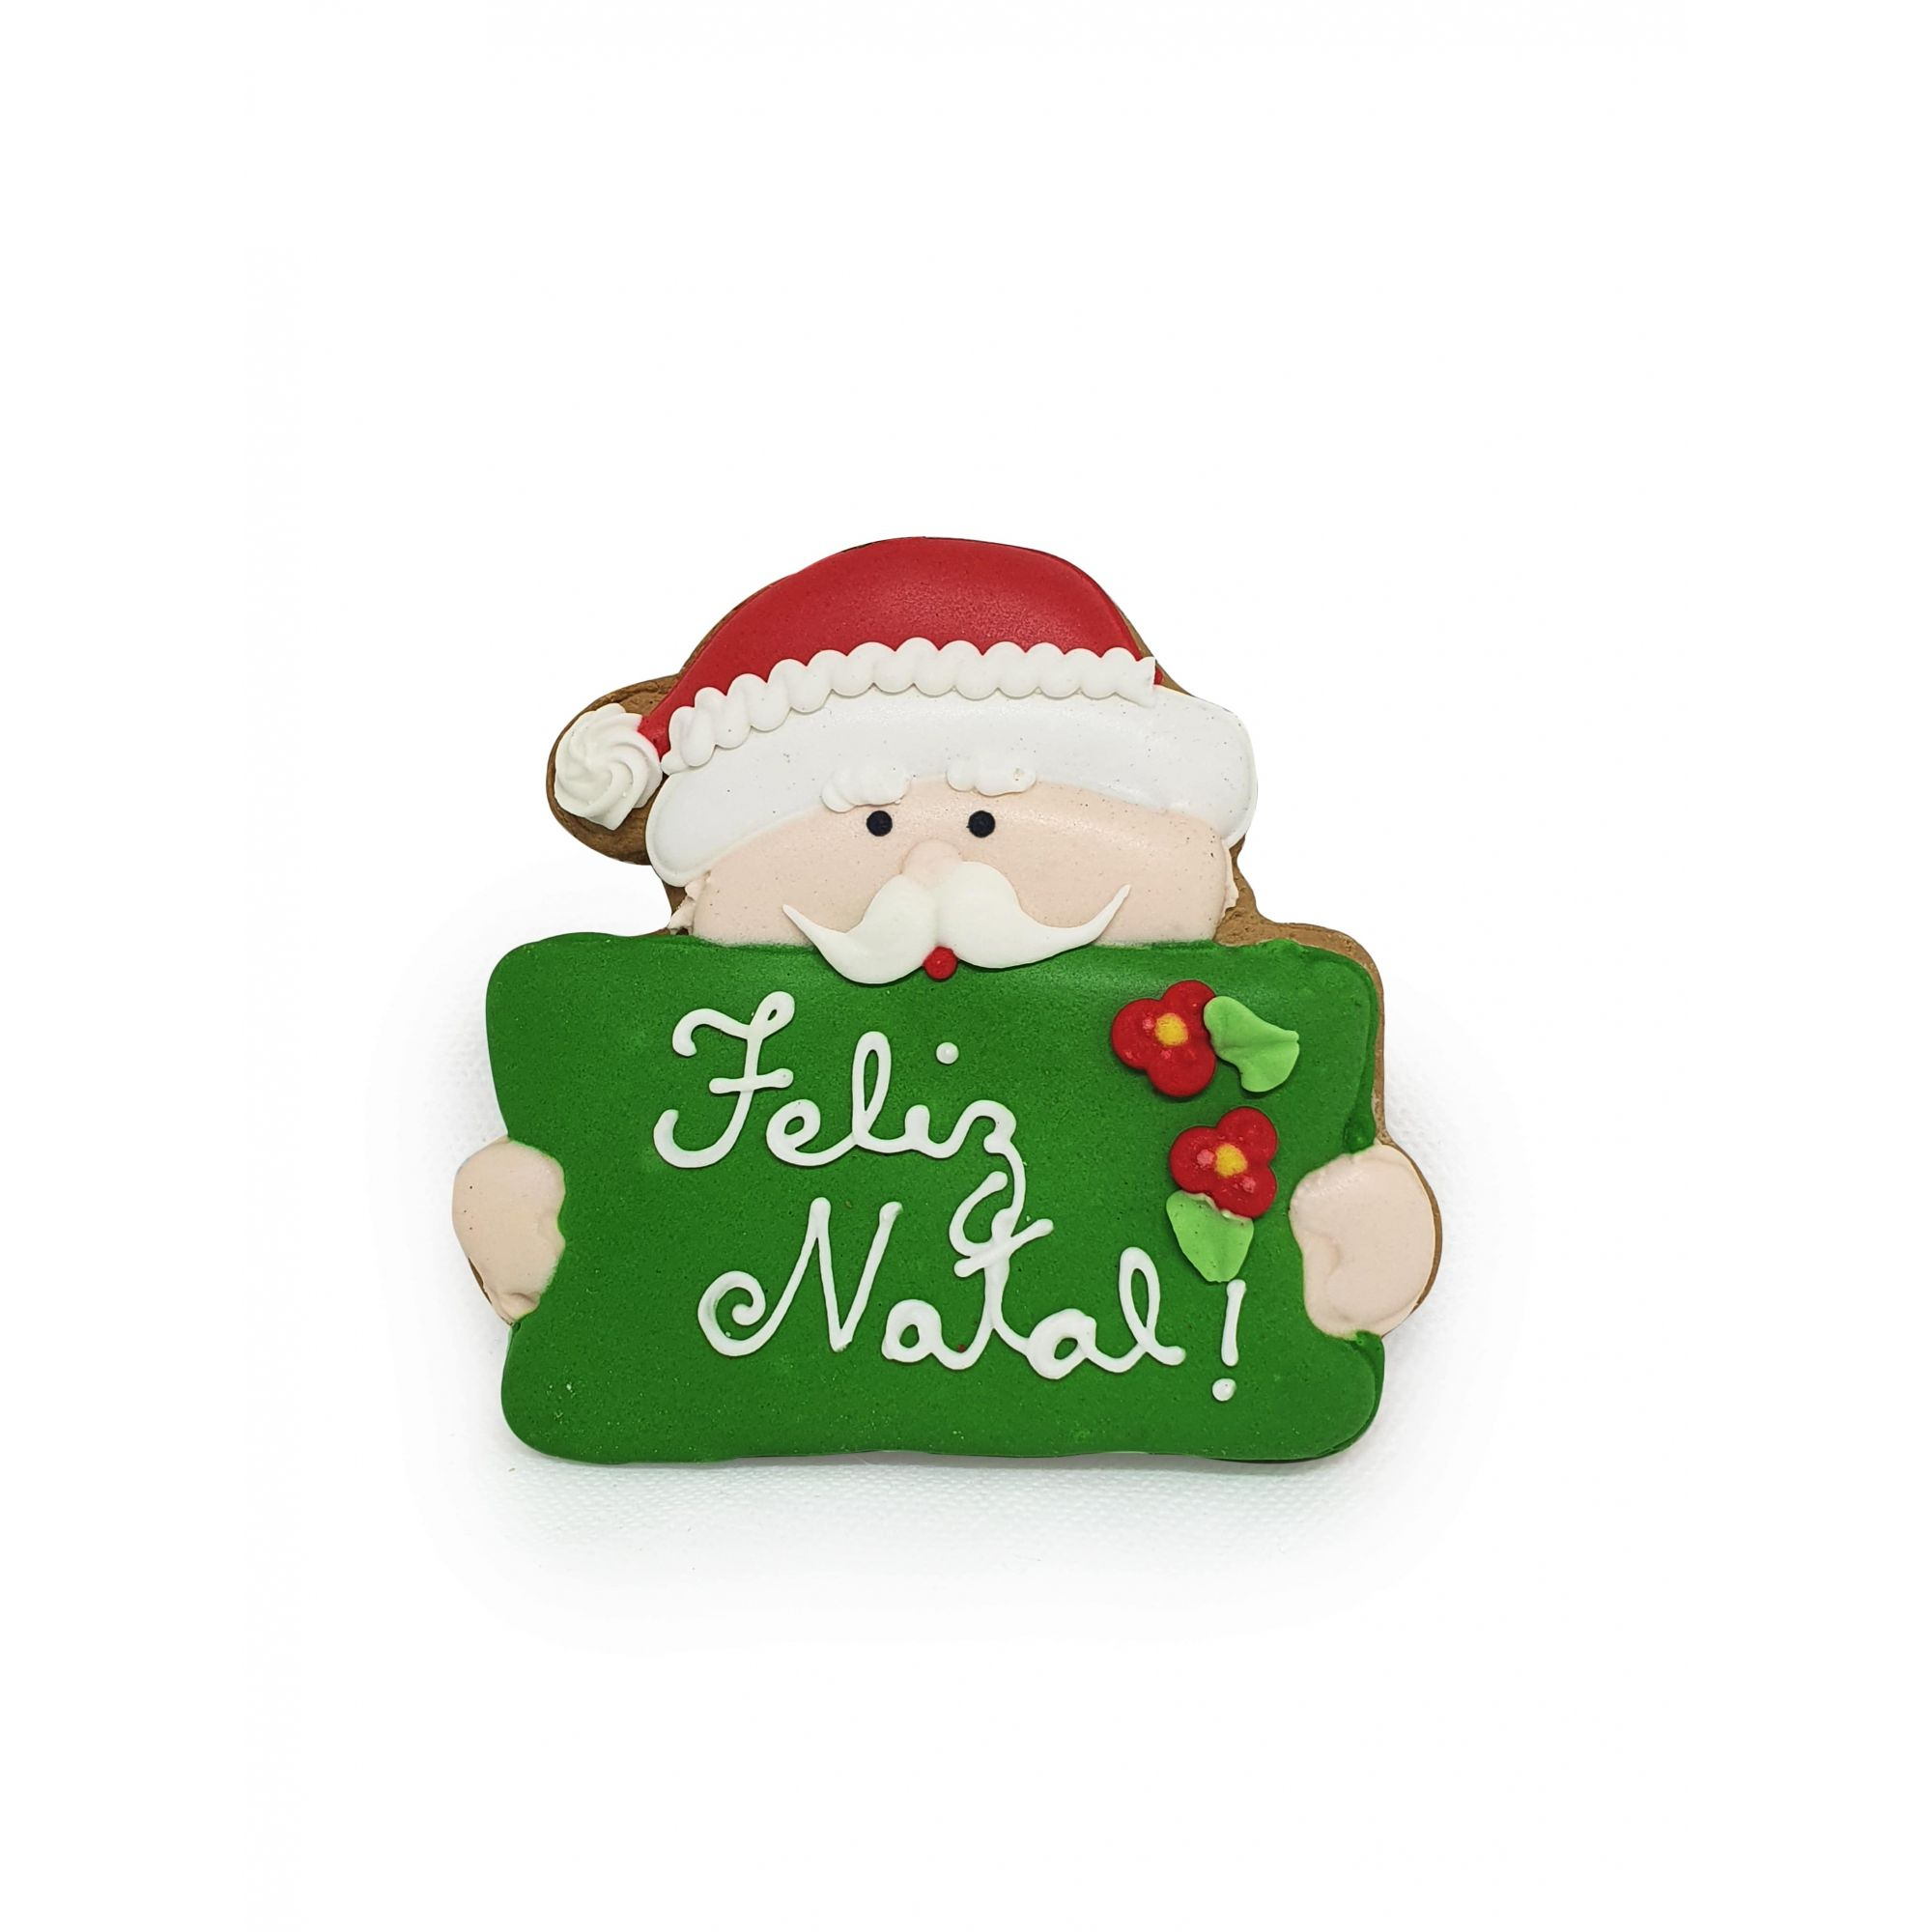 Decorado Papai Noel - Placa Feliz Natal - 50g